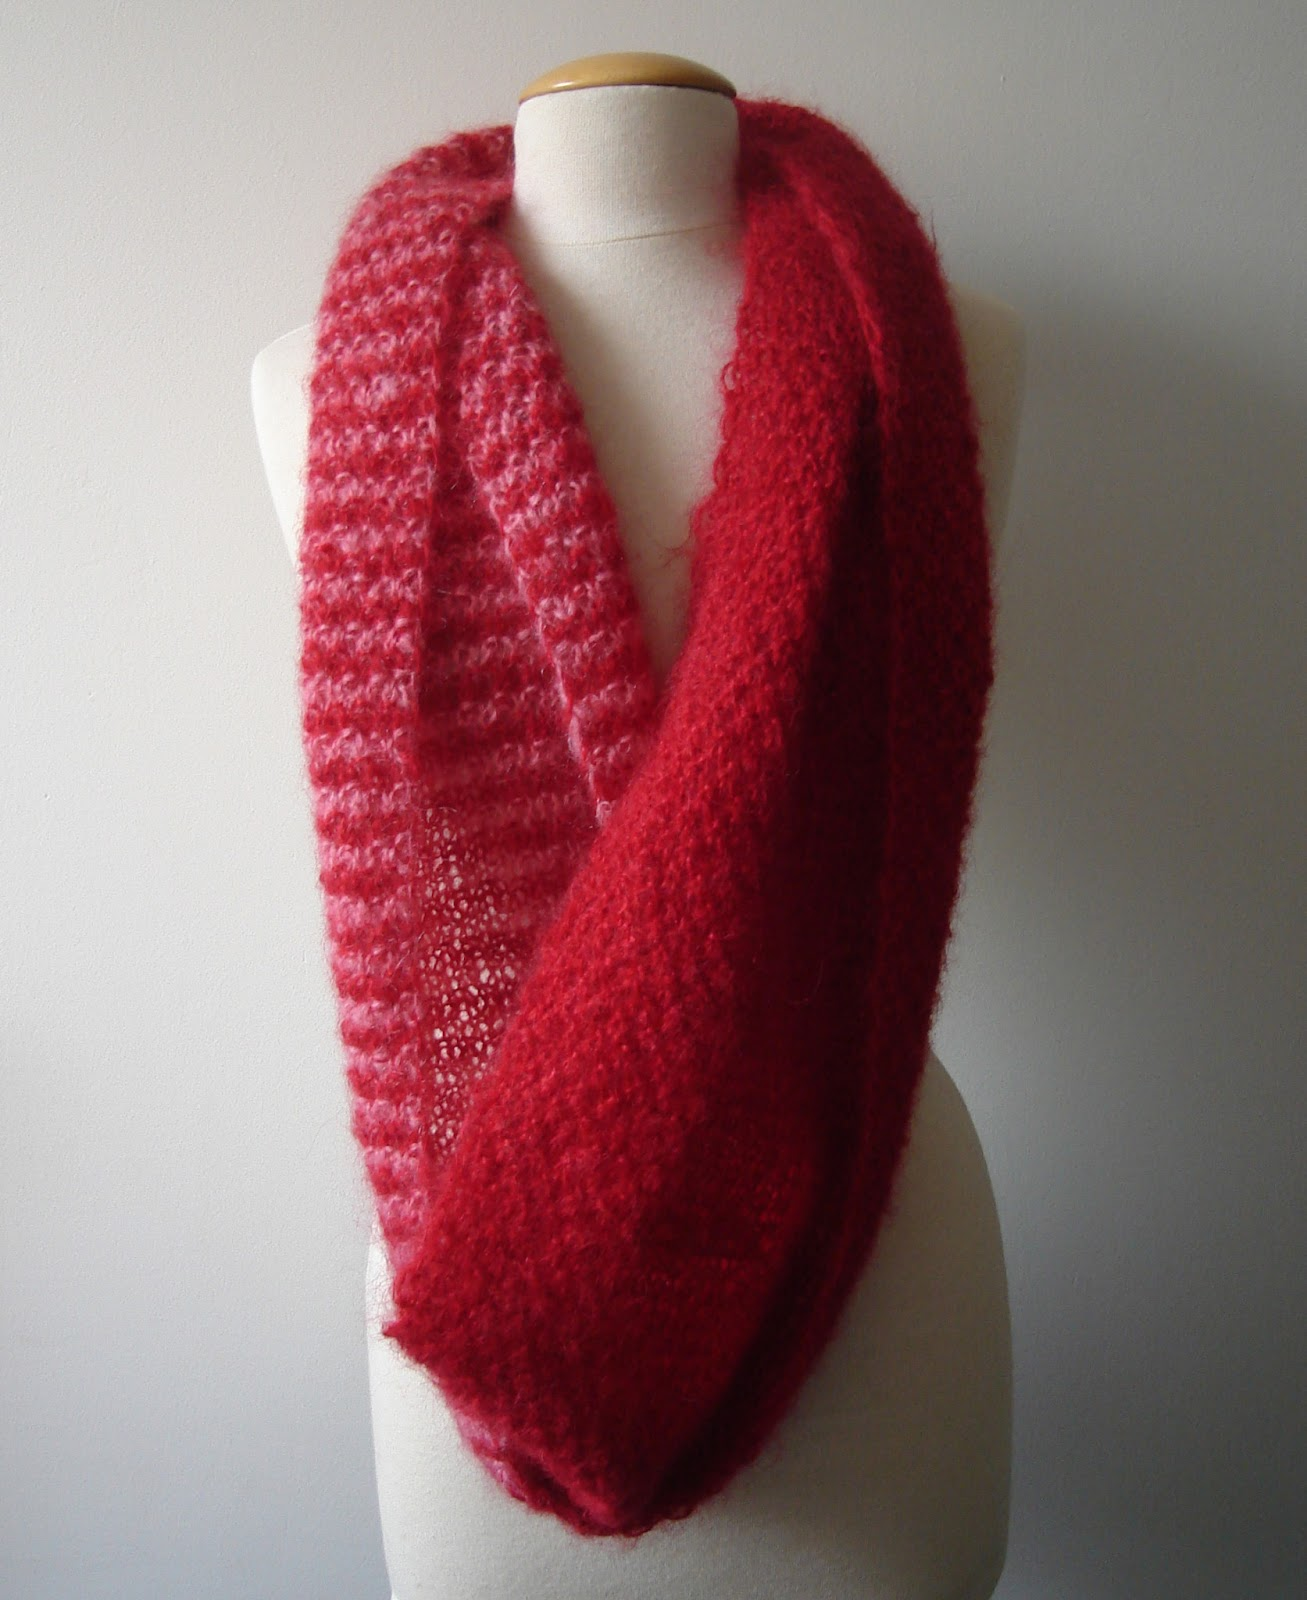 Handmadehandsome handmade items and knitting patterns youll find it under infinity scarf eindeloze sjaal under free patterns at the top of this page will you add a photo of your finished scarf to this bankloansurffo Images